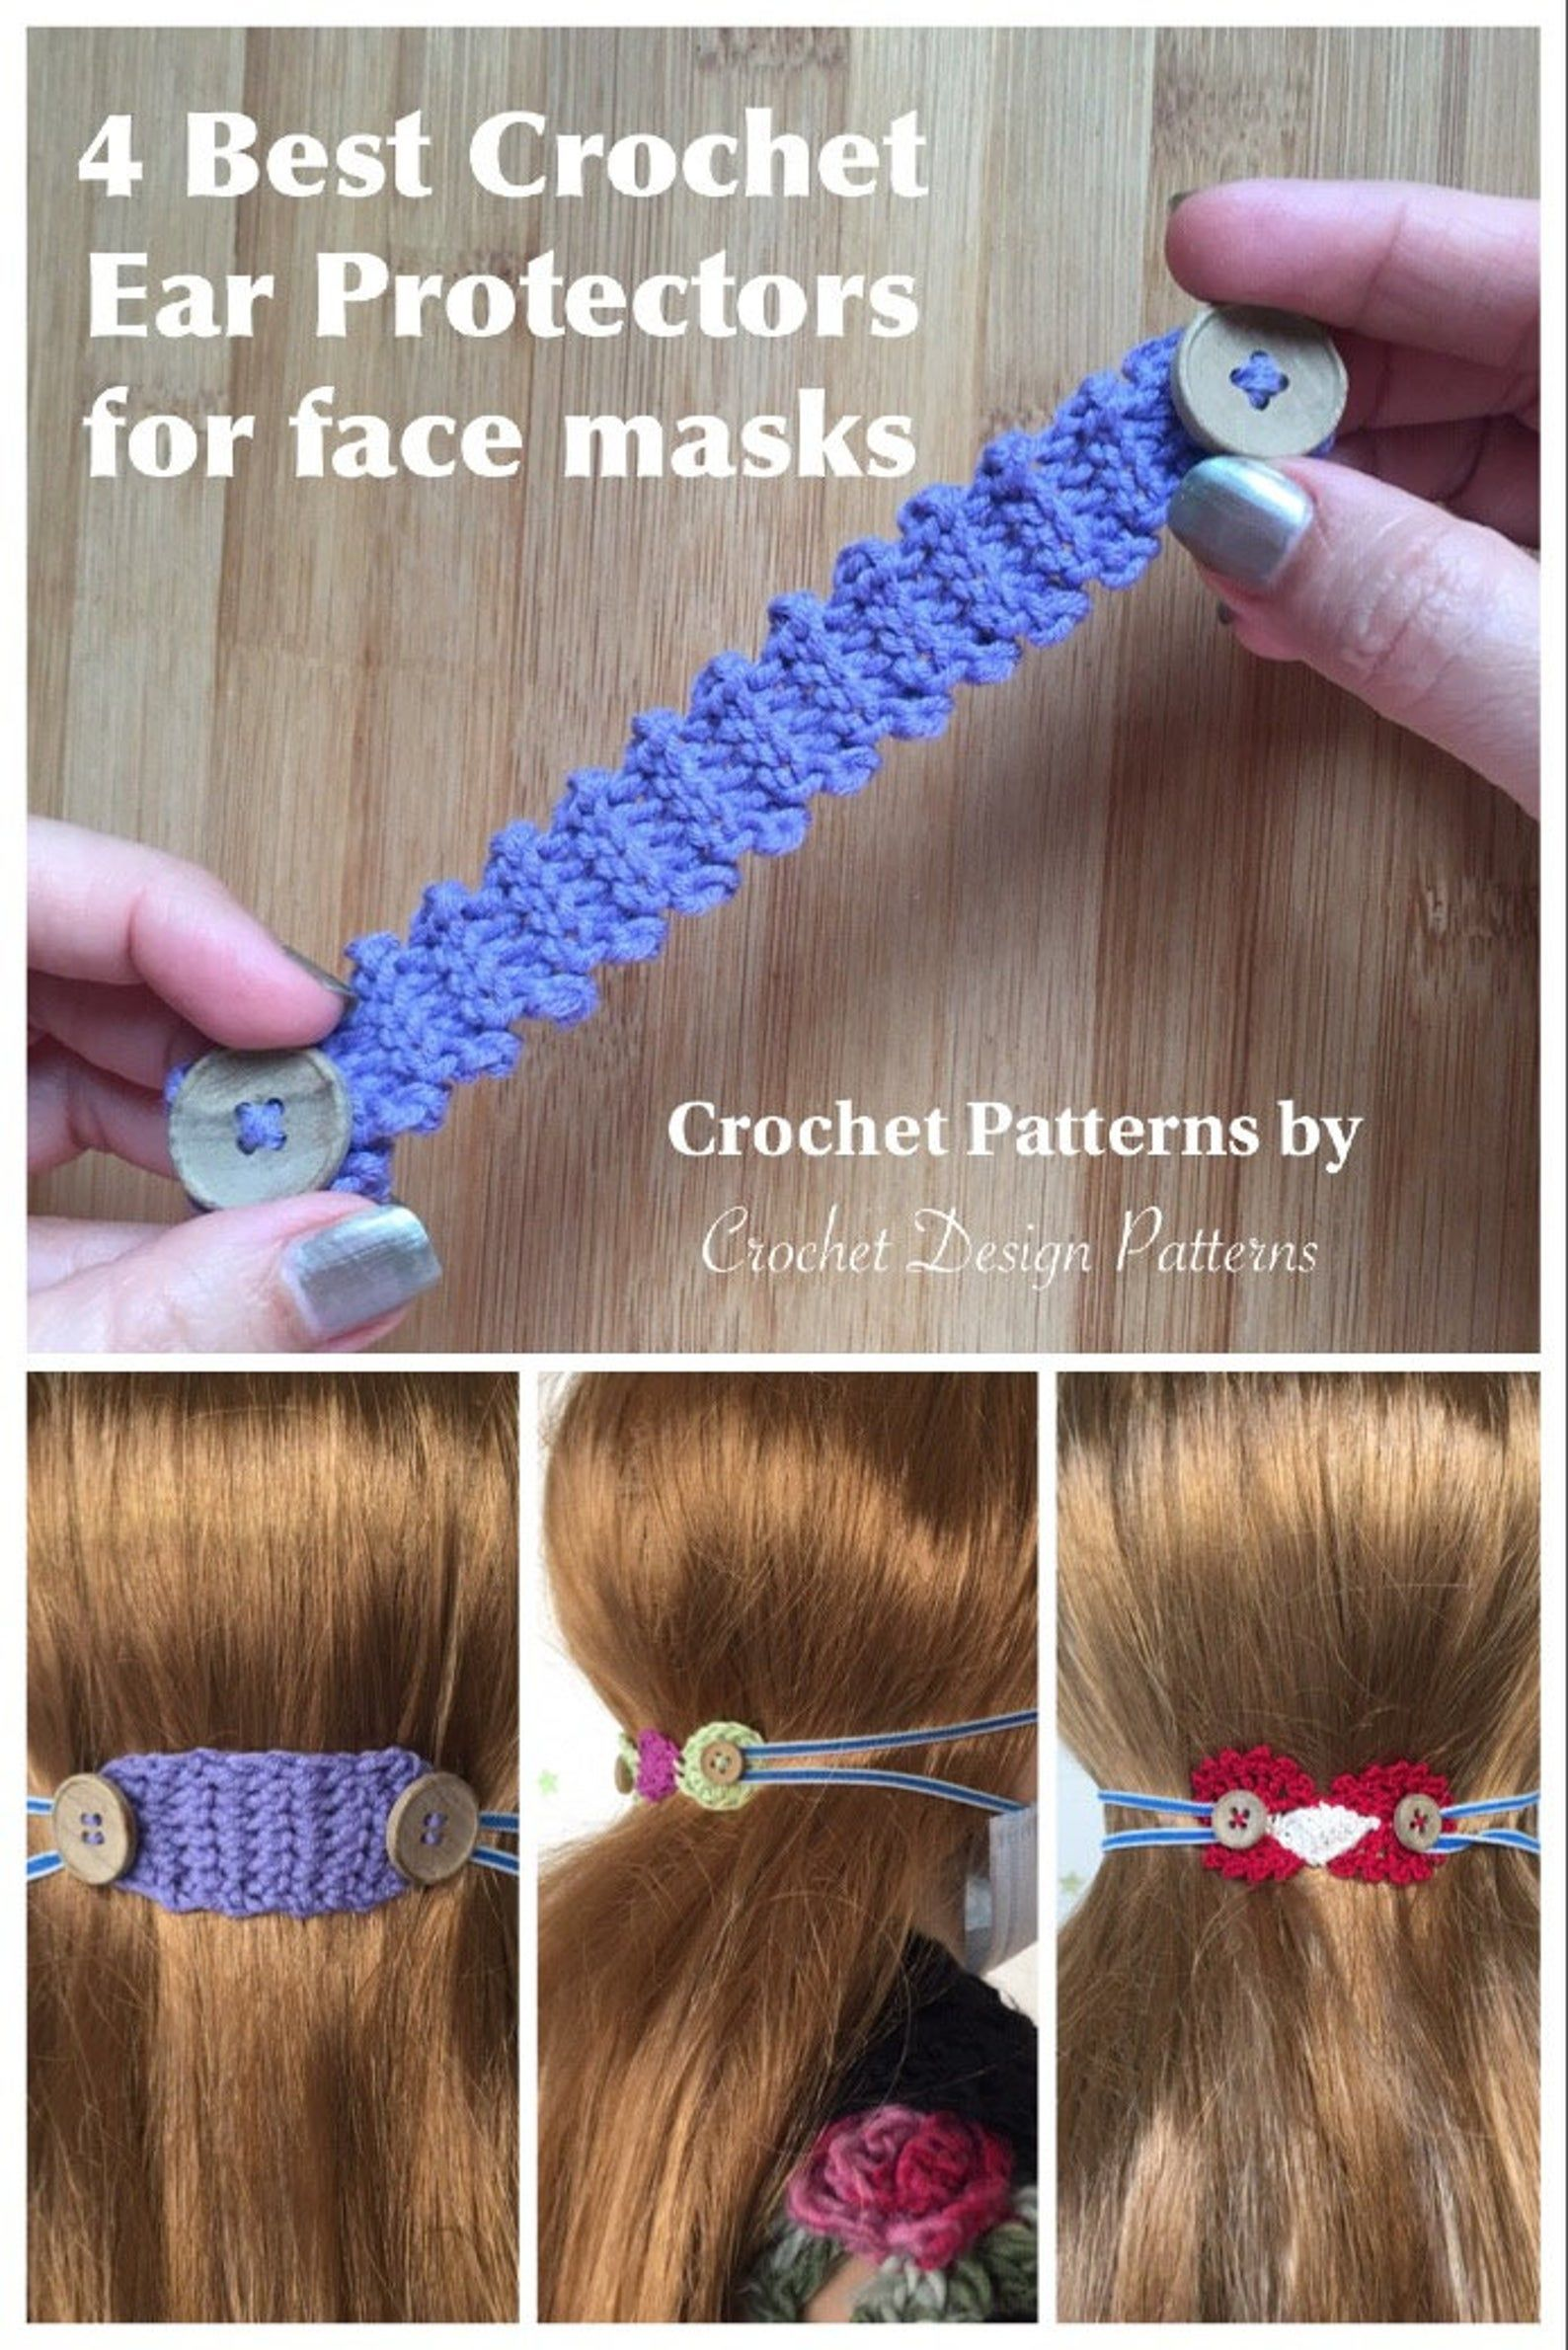 4 crochet patterns for Ear savers / mates / protec